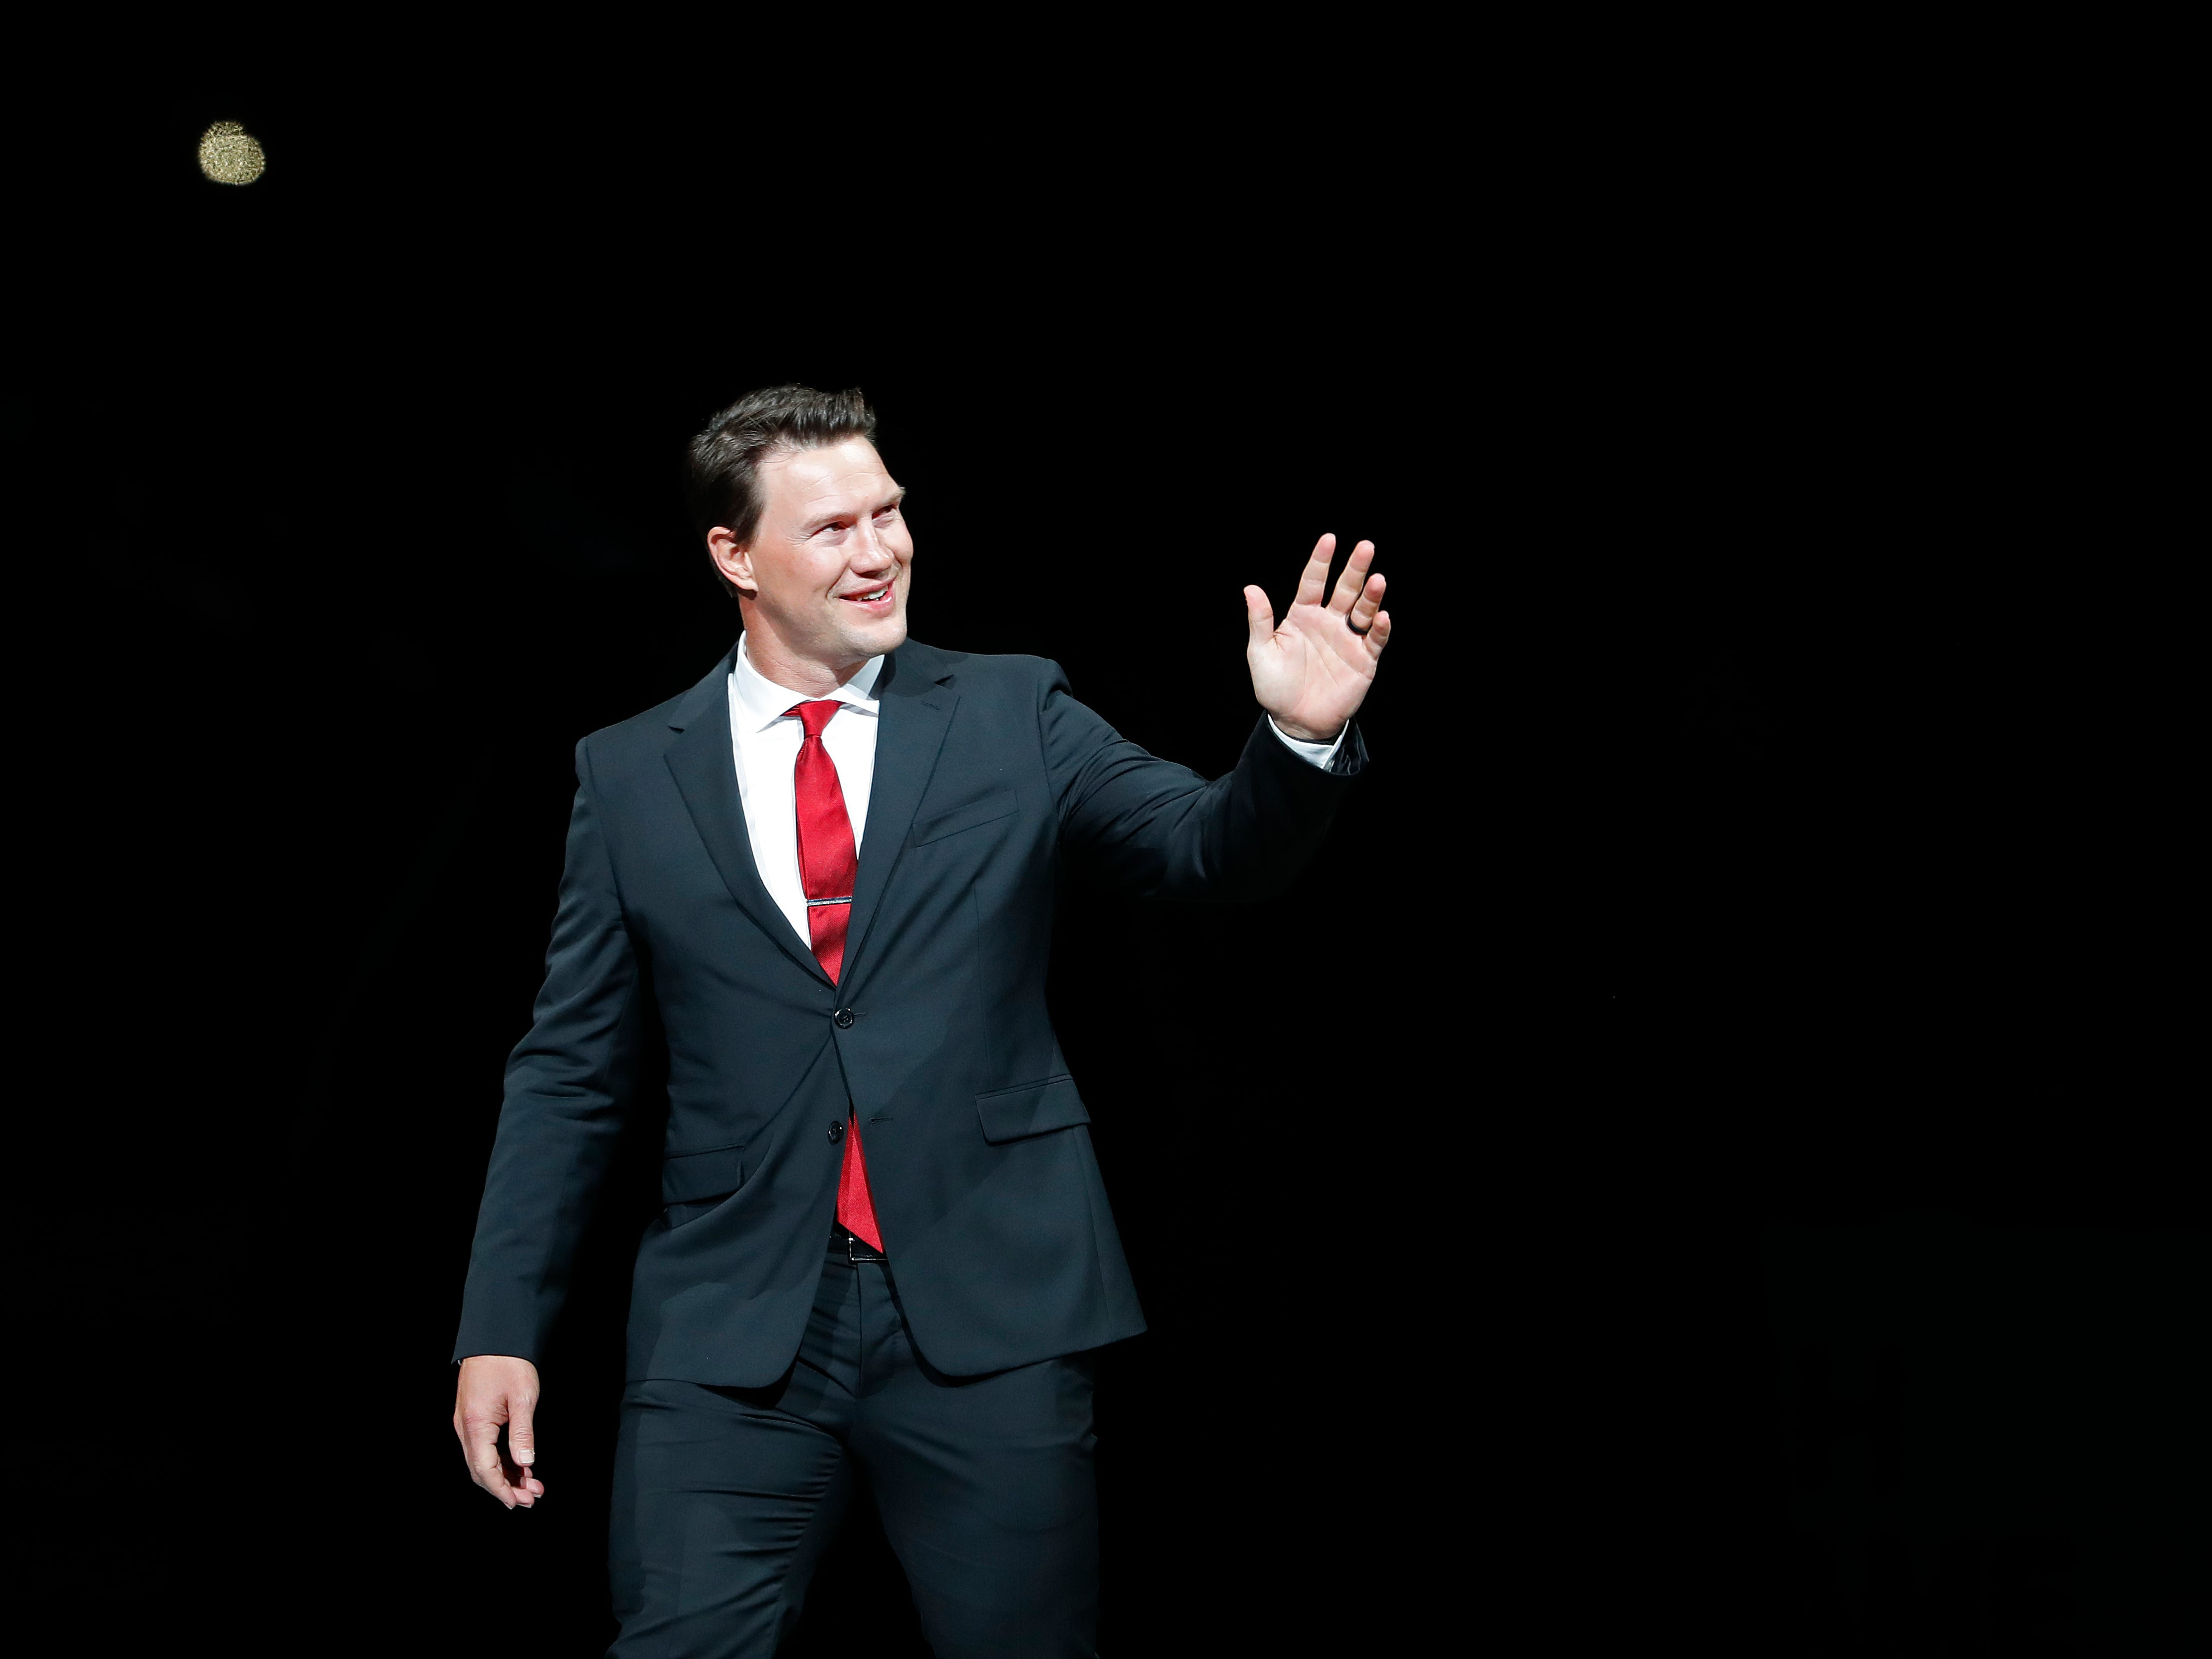 Shane Doan waves to fans as he receives a standing ovation during the jersey retirement ceremony at Gila River Arena in Glendale, Ariz. on February 24, 2019.